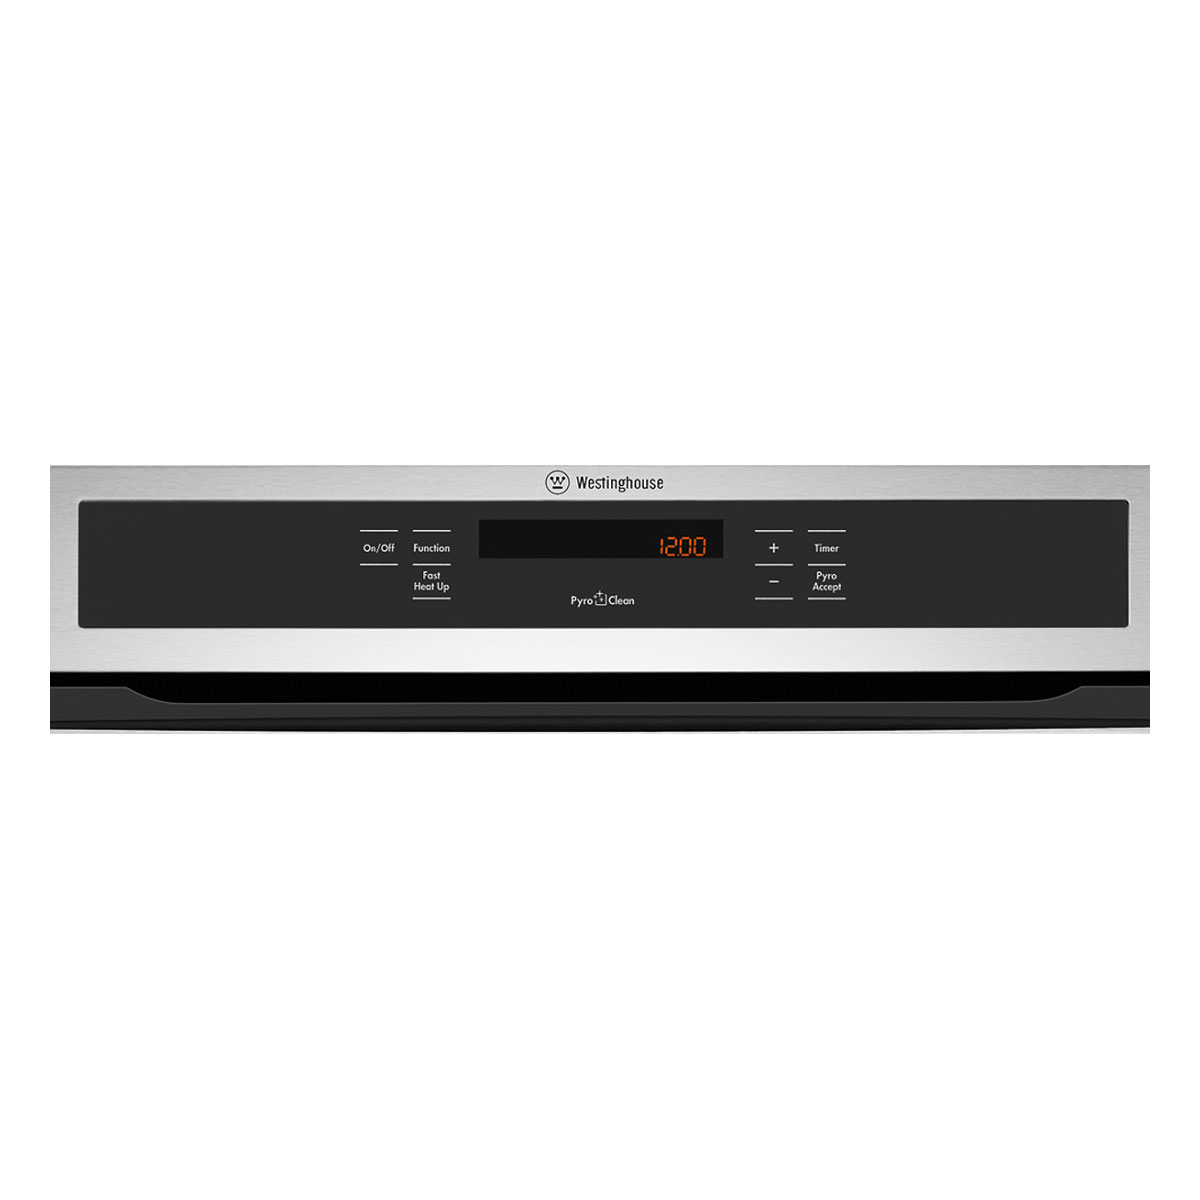 Westinghouse WVEP618S Pyrolytic Built-In Oven 27703